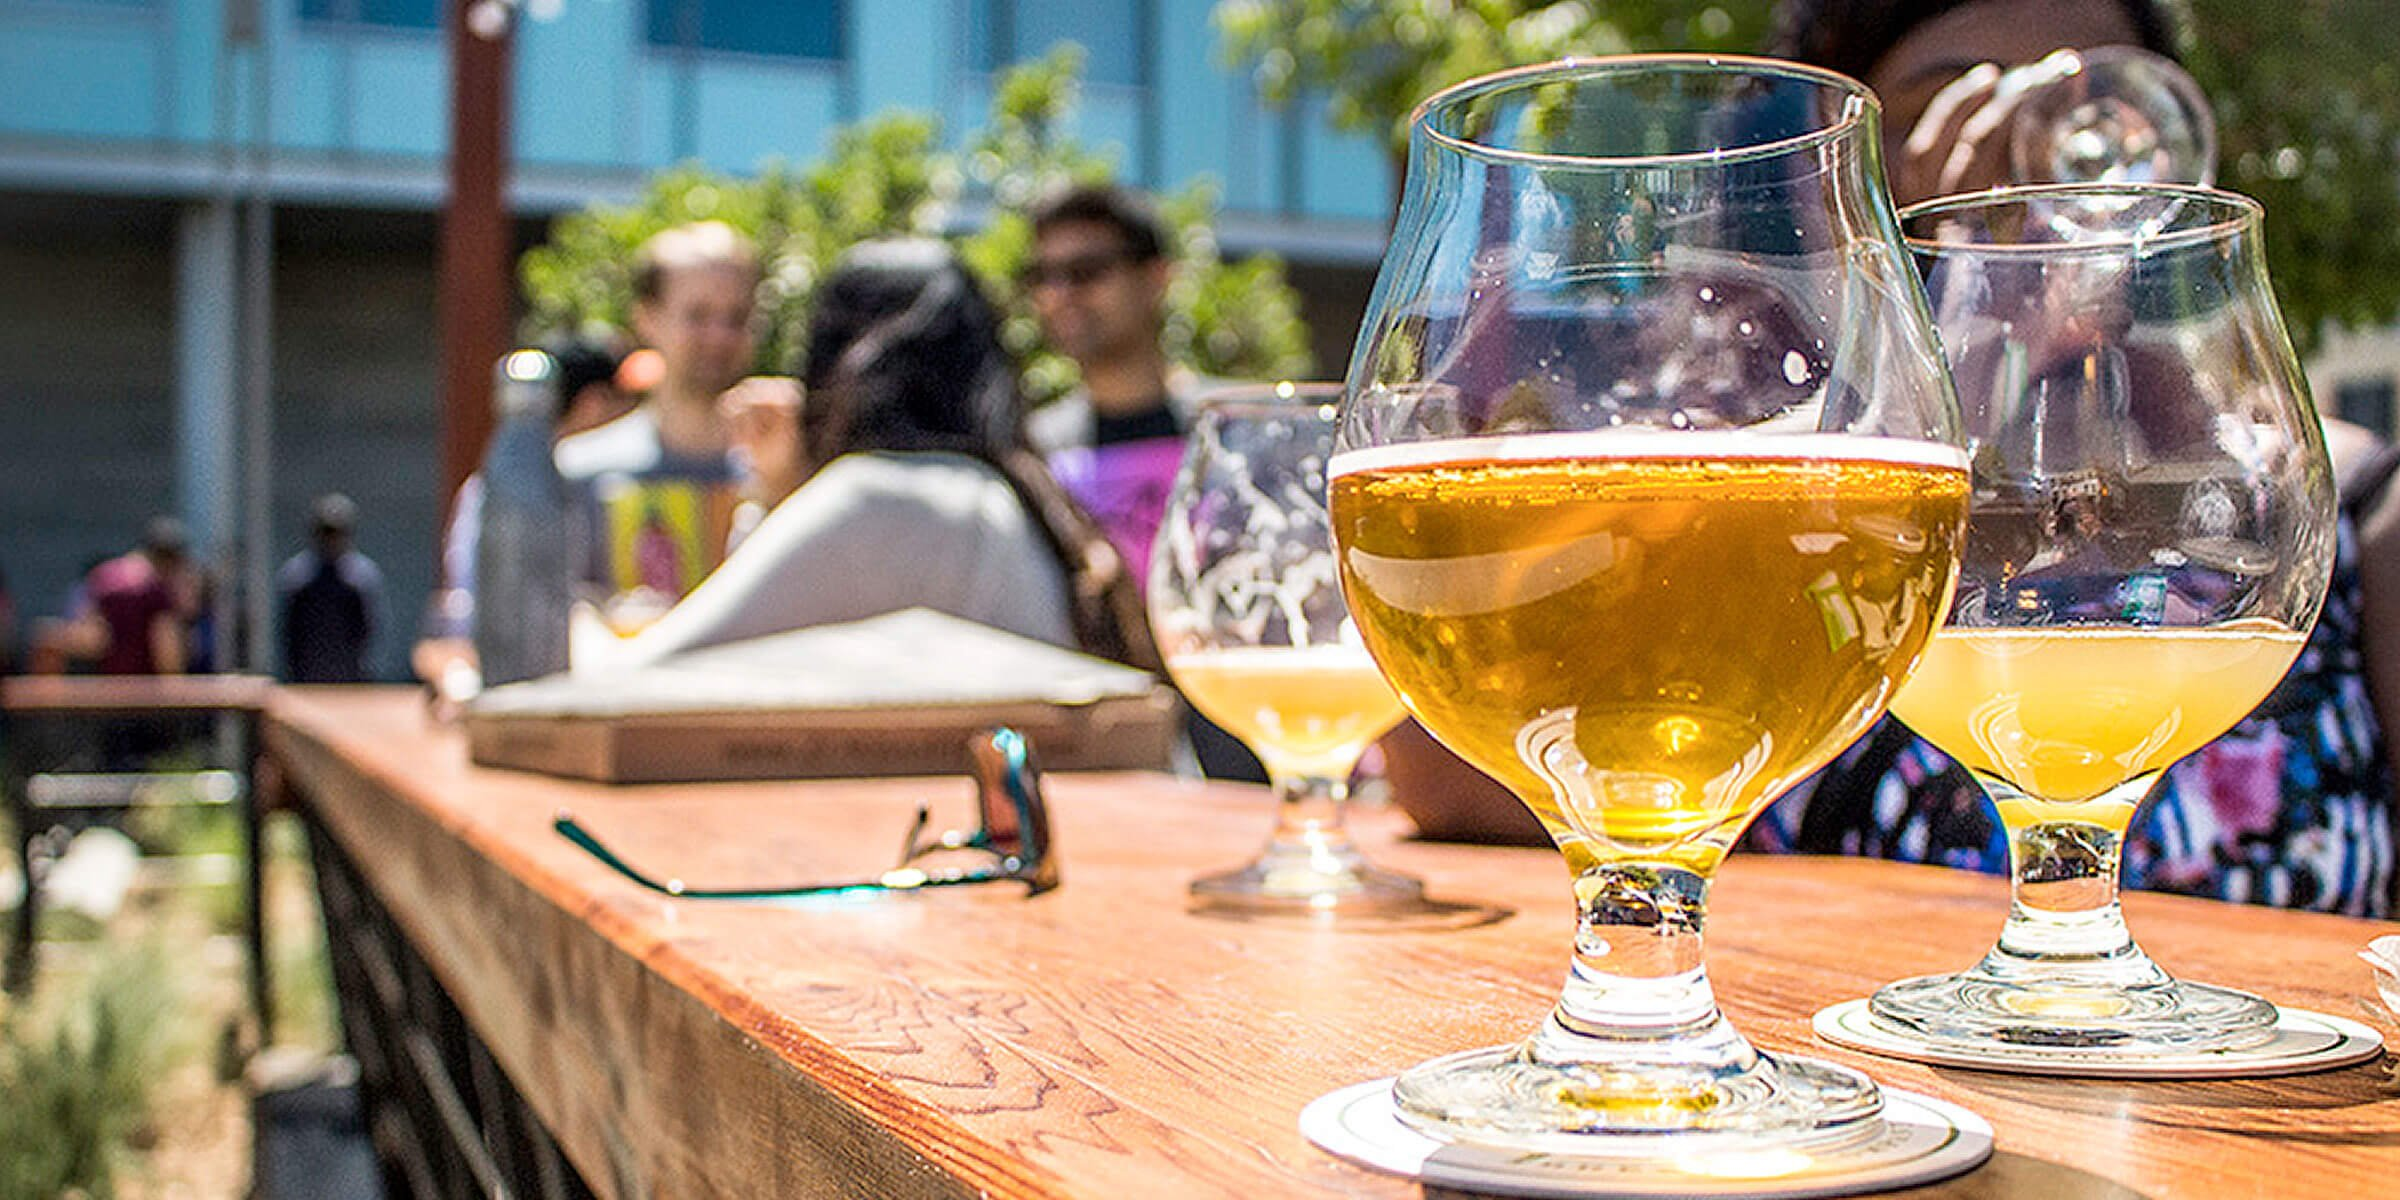 Beers outside on the patio at the Fieldwork Brewing Company location in San Mateo, California